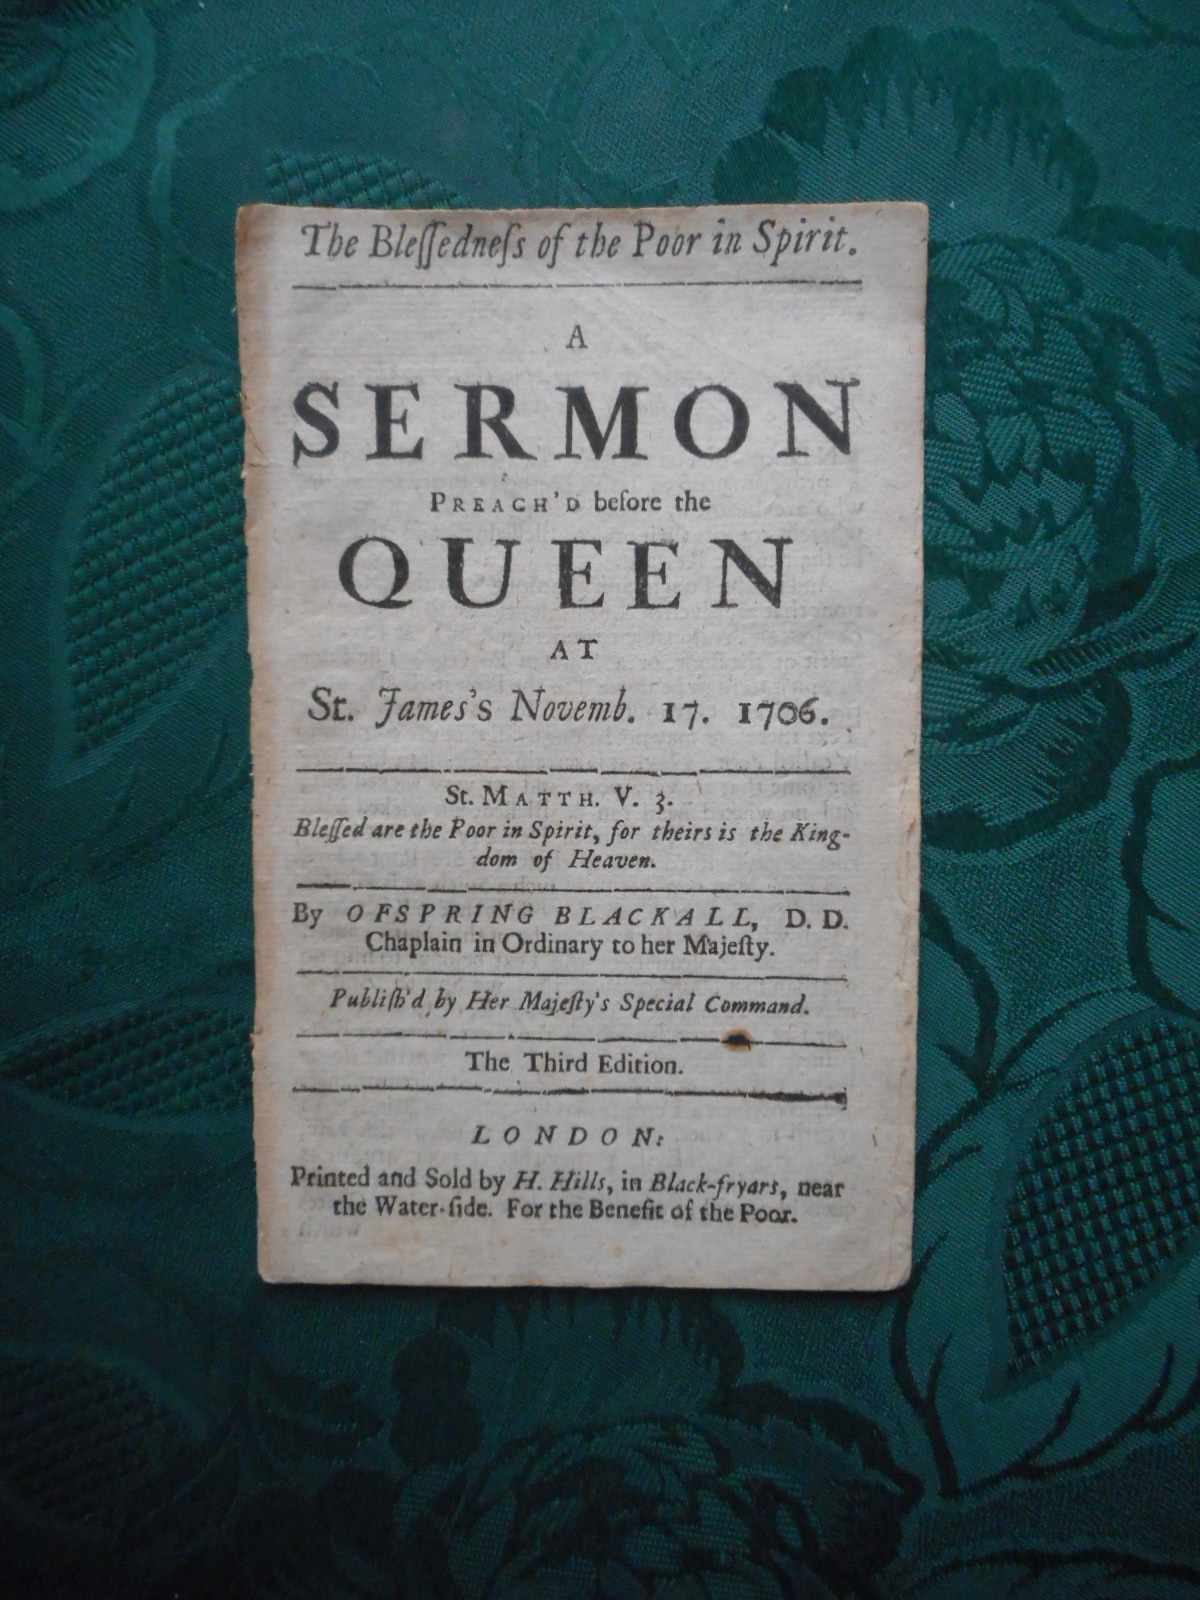 Image for The Blessedness of the Poor in Spirit. A Sermon Preach'd before the Queen At St James's Novemb. 17. 1706 (ORIGINAL 18th Century Pamphlet)